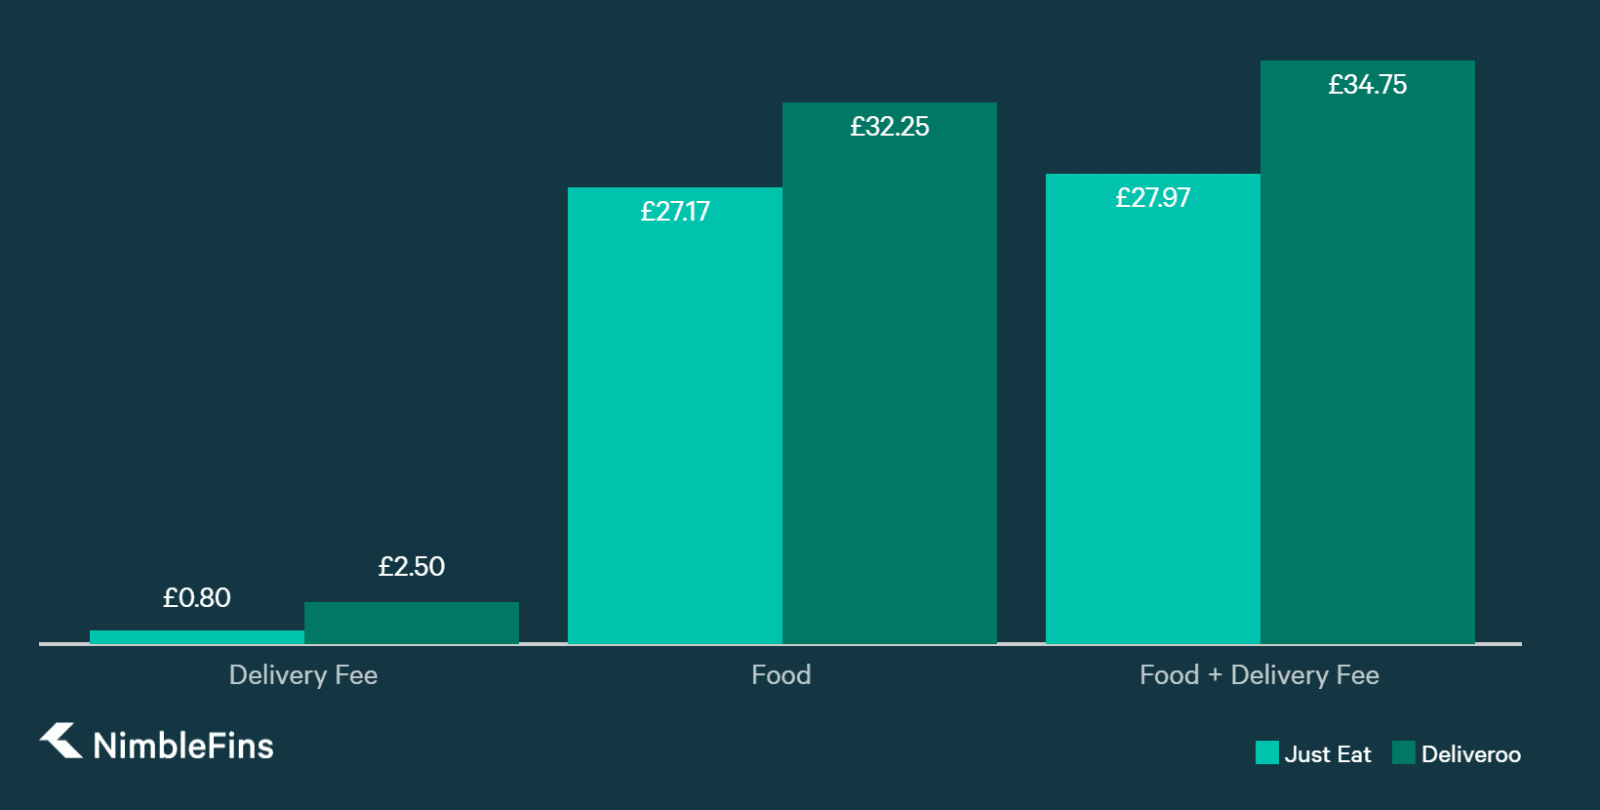 chart comparing Just Right vs. Deliveroo food and delivery prices